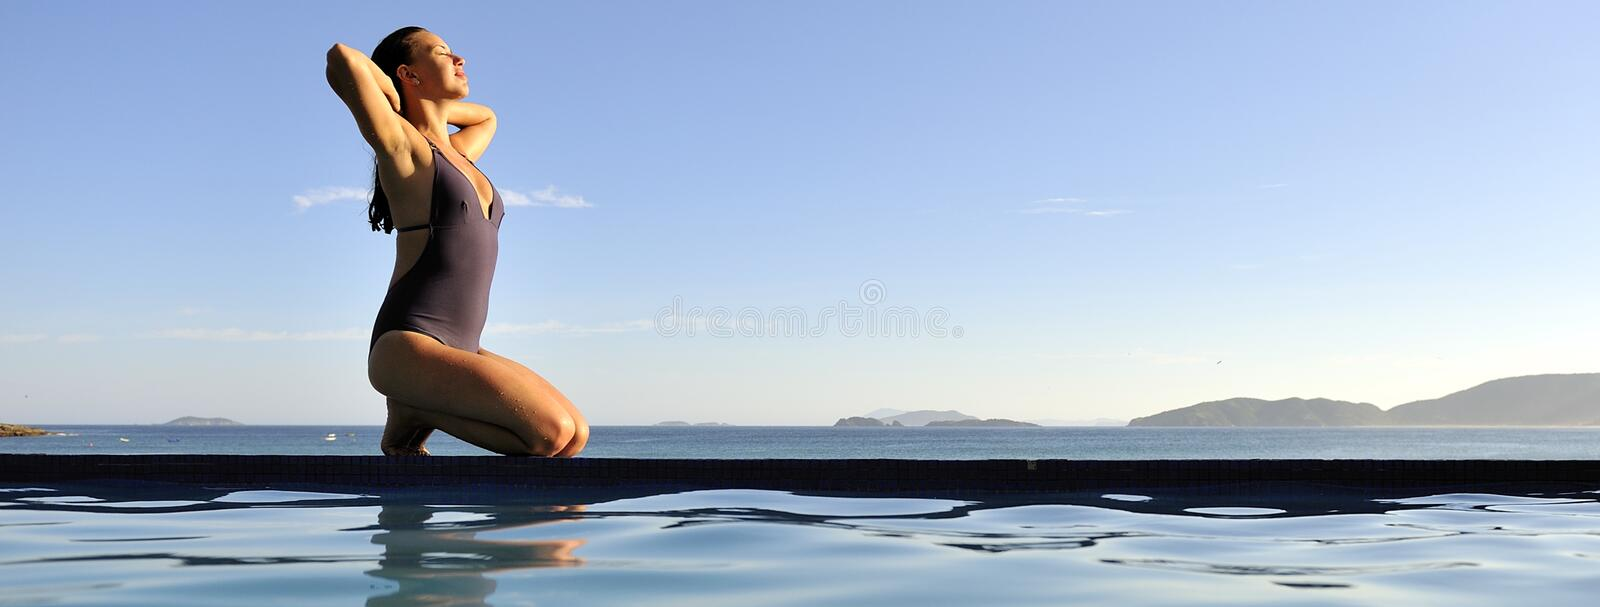 Relaxation on the beach royalty free stock images